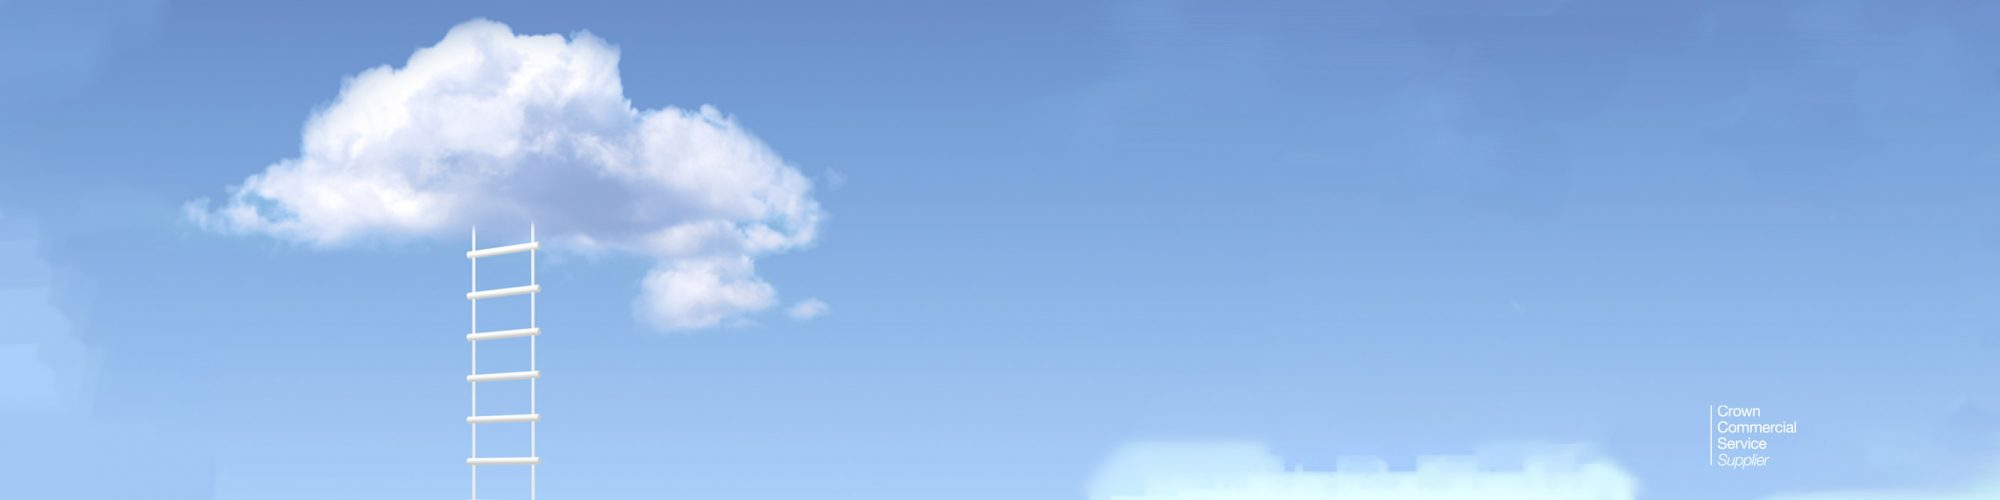 Cloud Adoption within Public Sector is Accelerating – but why?